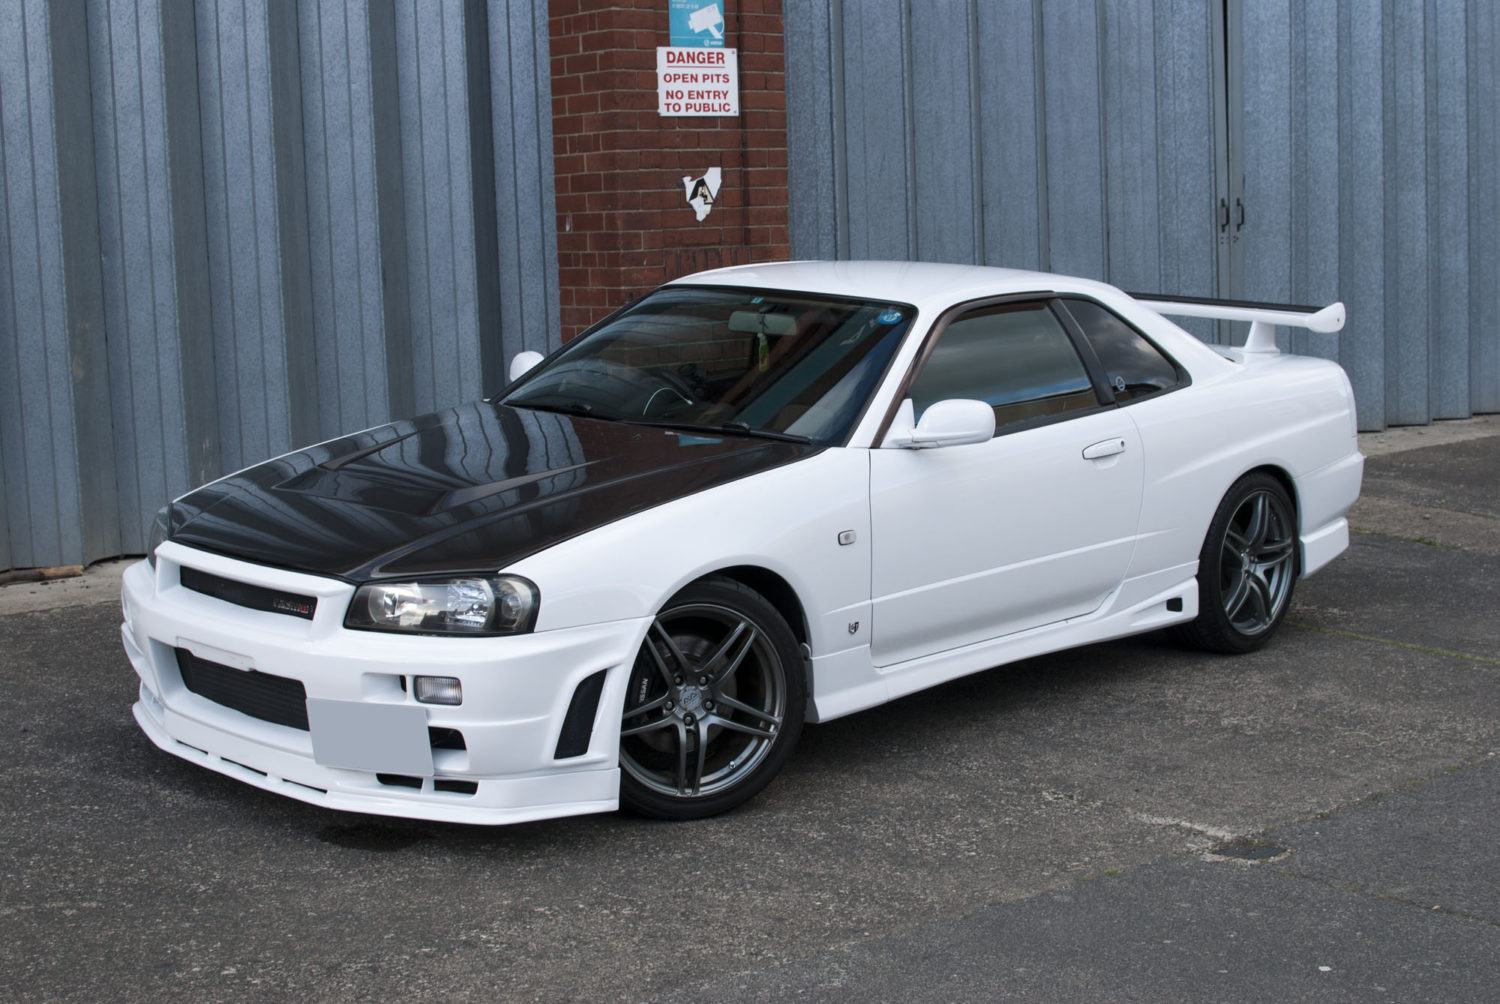 Nissan Skyline R34 GTT Detailed by DWR Detailing